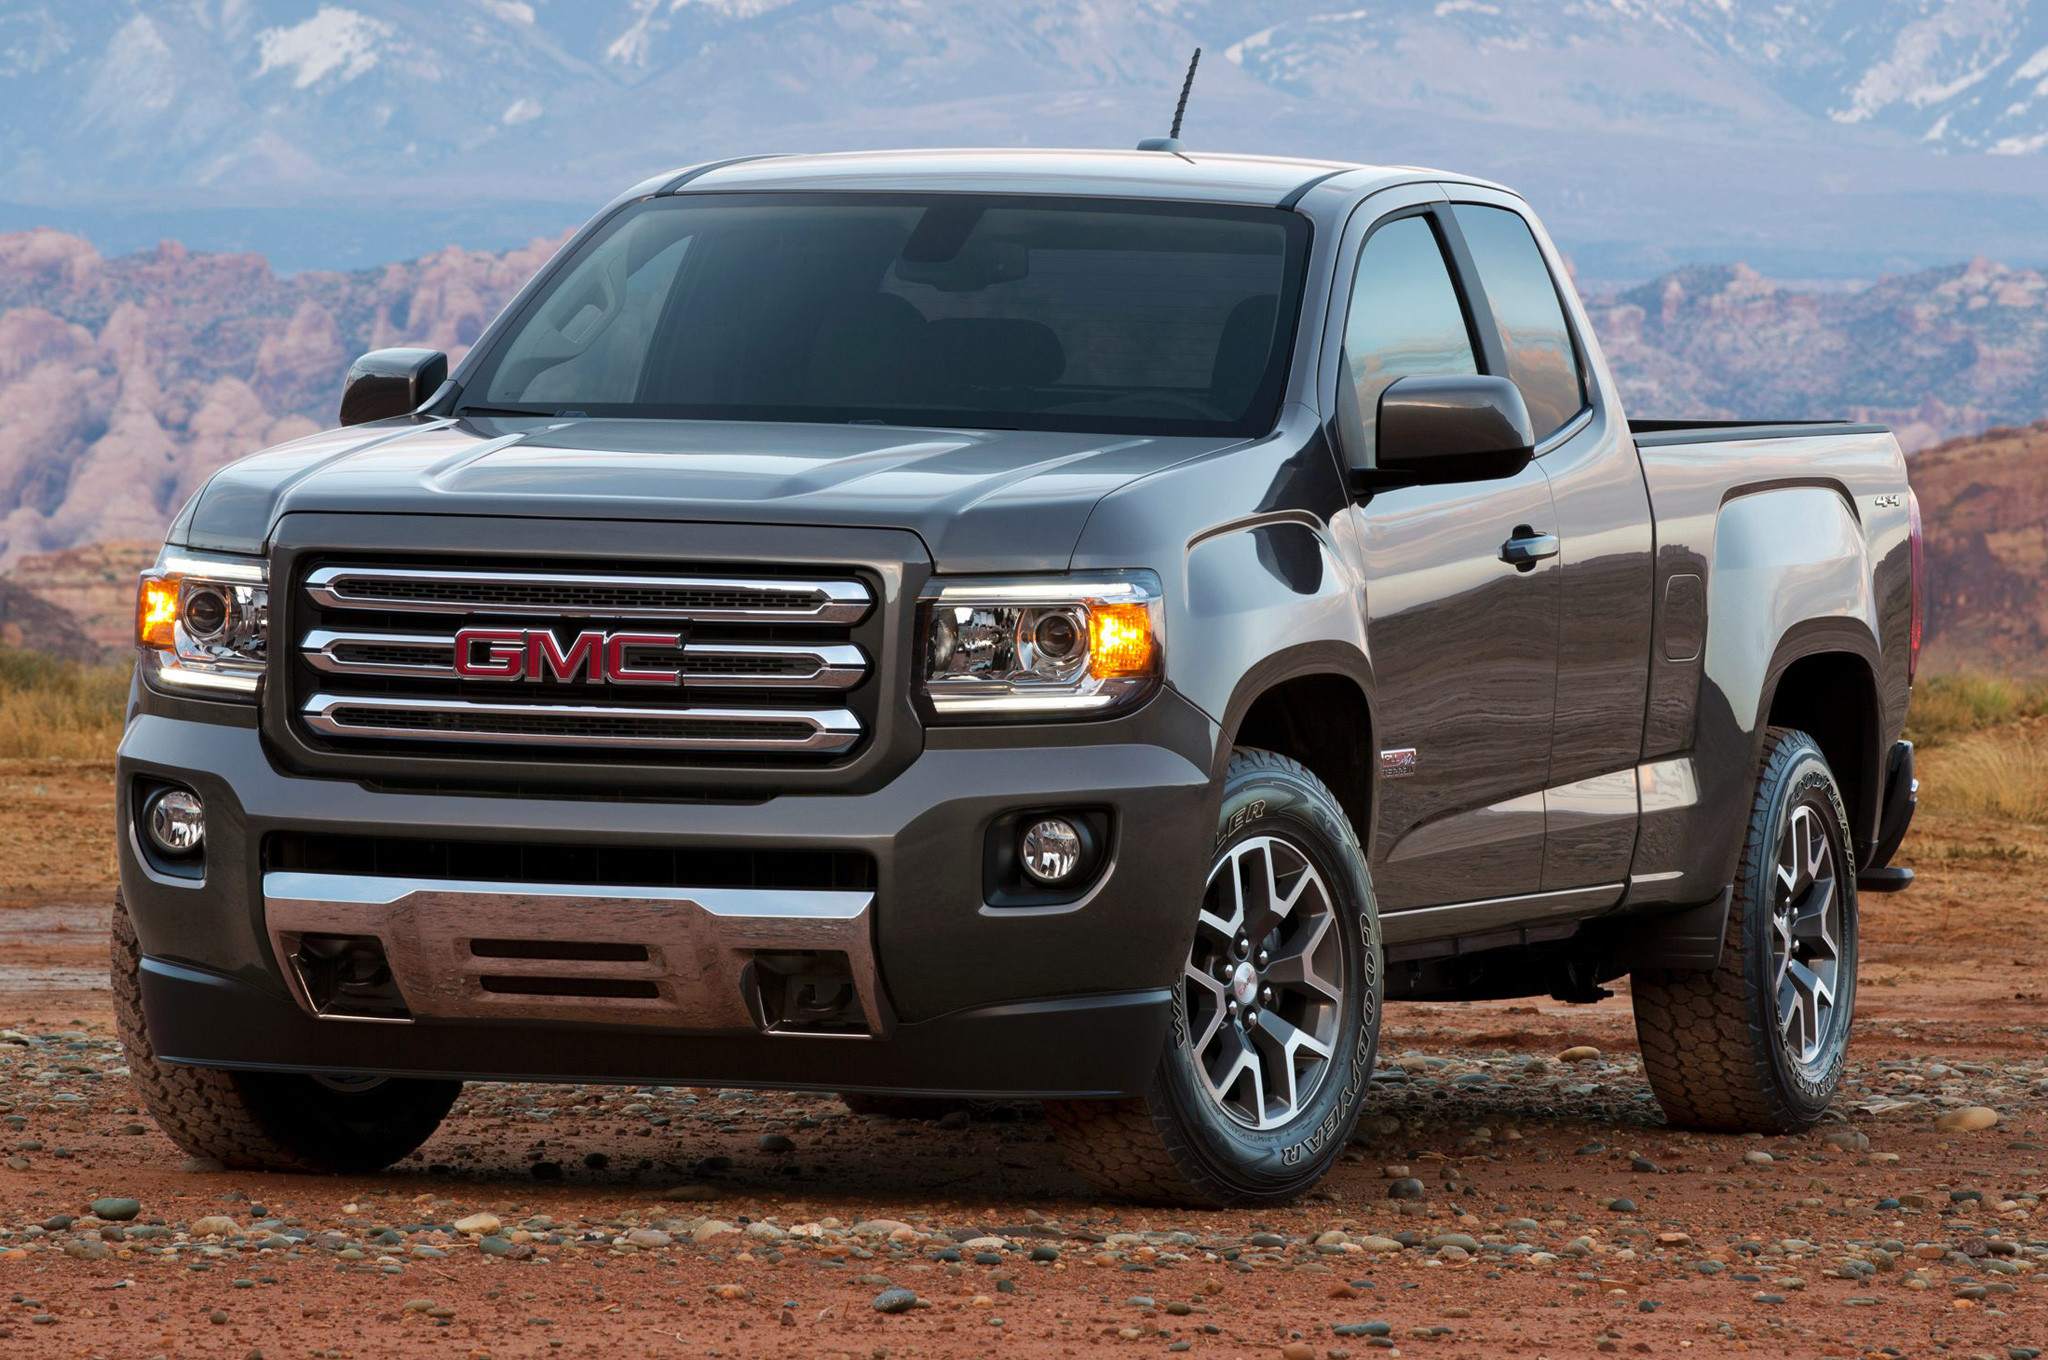 2015 Gmc Canyon Front End (Photo 4 of 6)